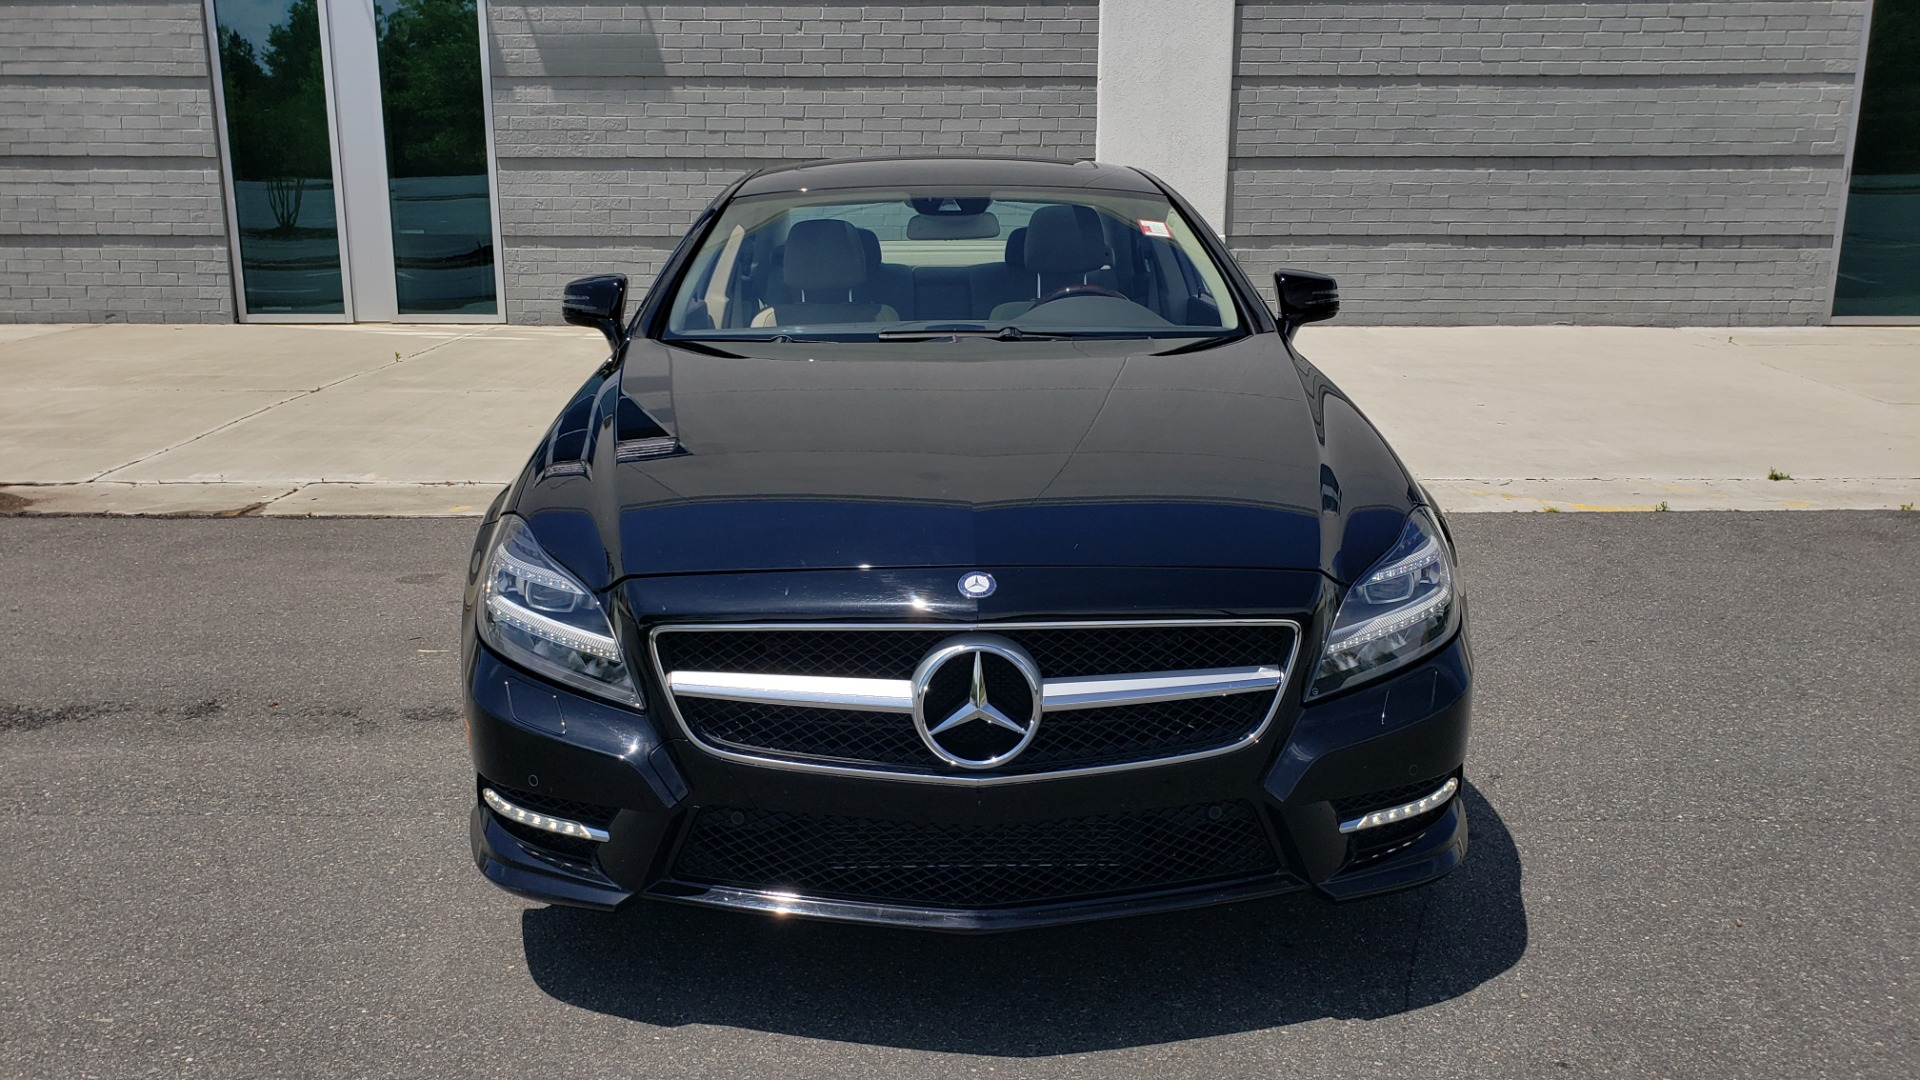 Used 2014 Mercedes-Benz CLS-CLASS CLS 550 PREMIUM / AMG SPORT WHLS / SUNROOF / LANE TRACK / PARKTRONIC for sale Sold at Formula Imports in Charlotte NC 28227 23